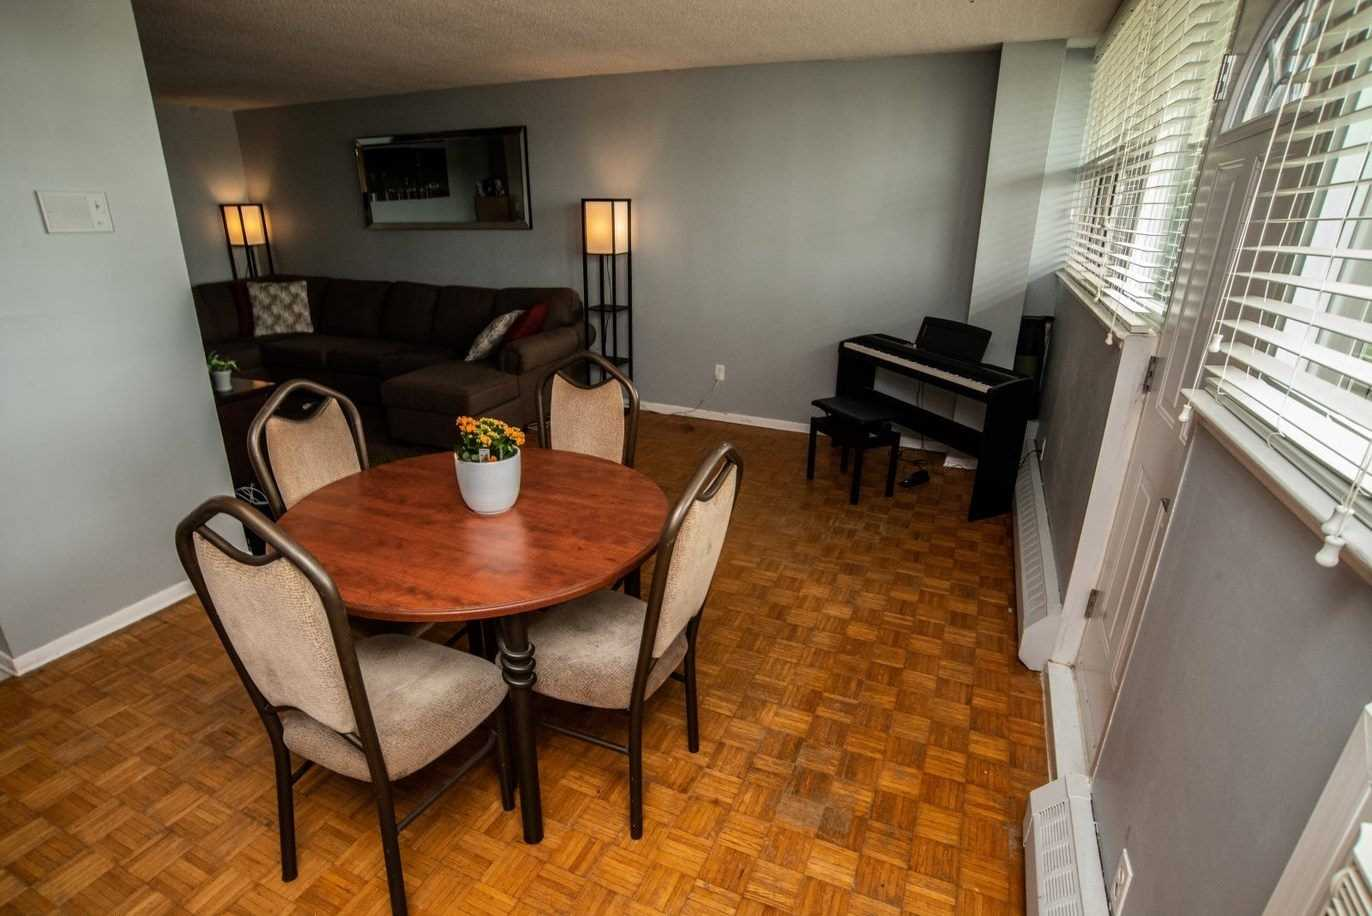 Image 20 of 20 showing inside of 1 Bedroom Condo Apt Apartment for Sale at 215 Glenridge Ave Unit# 310, St. Catharines L2T3J7